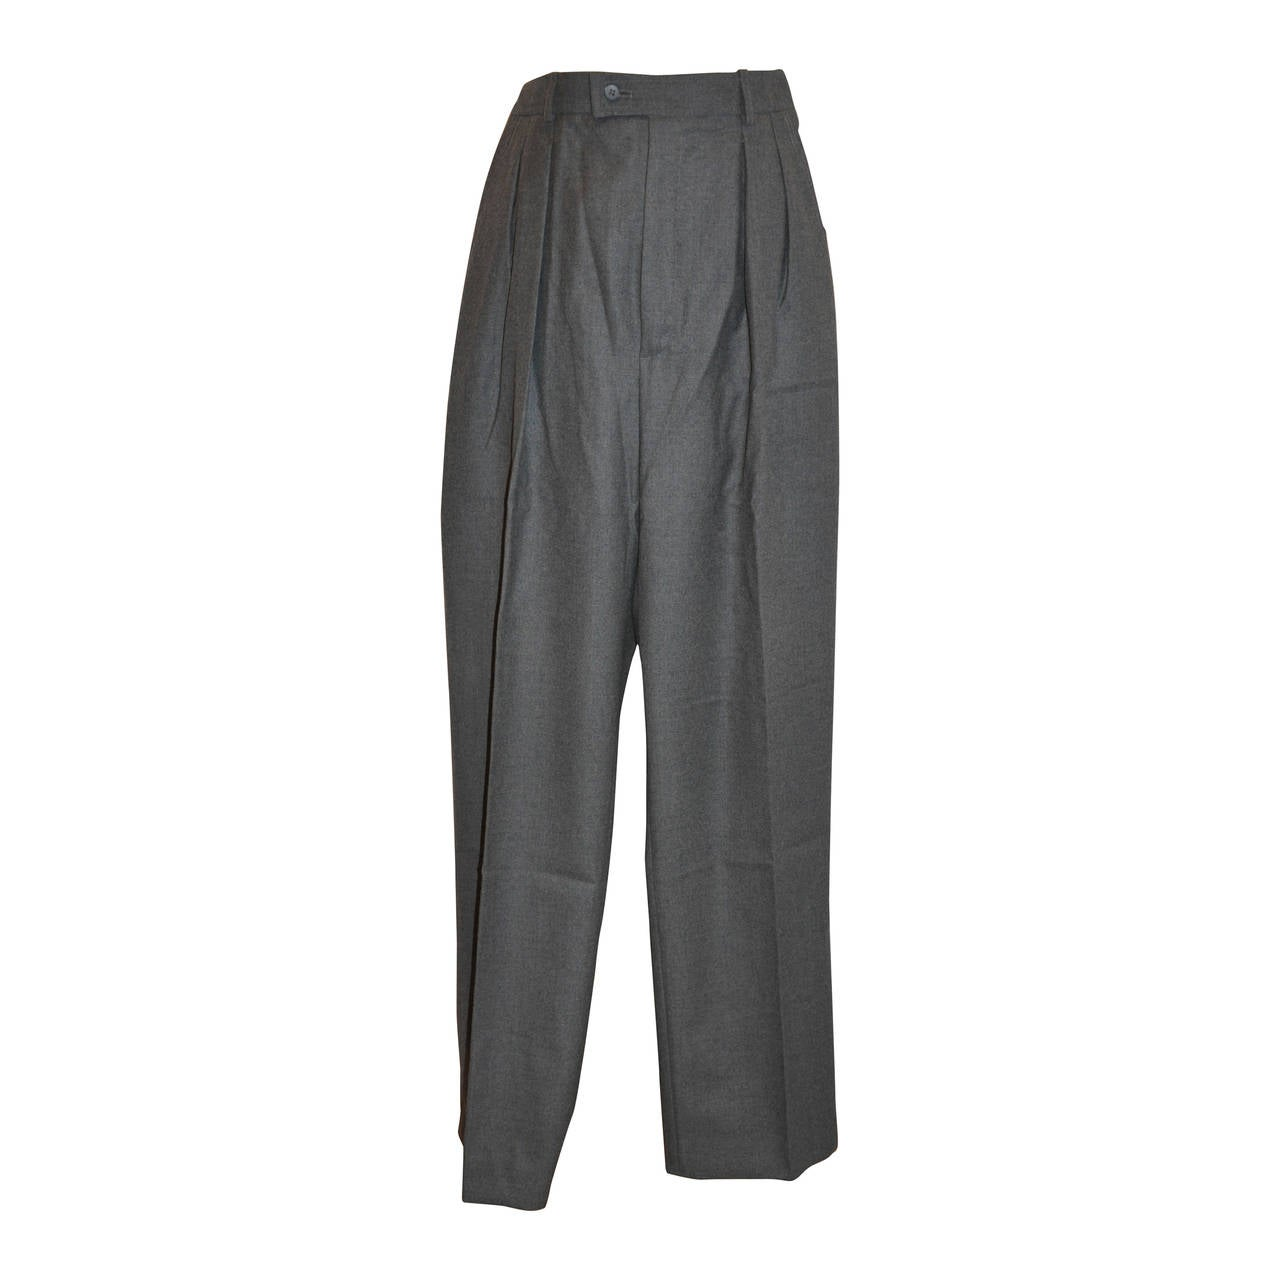 Yves Saint Laurent Pleated Charcoal Gray Wool Trousers